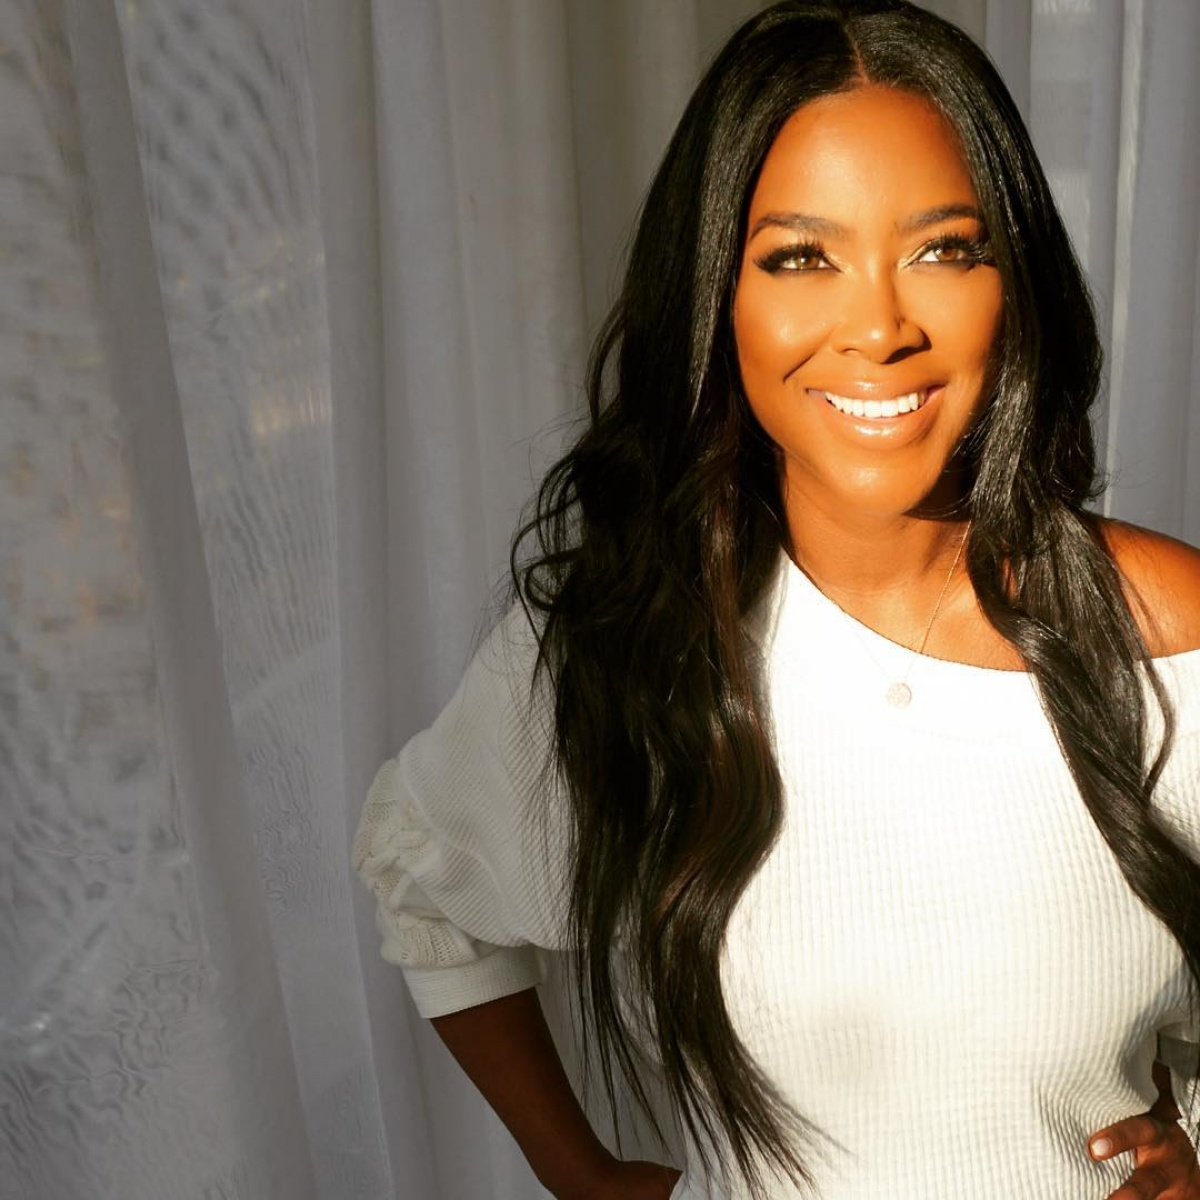 Kenya Moore Posts New Pics Of Baby Brooklyn And Kandi Burruss' Son Ace Wells Tucker Already Seems In Love With The Baby